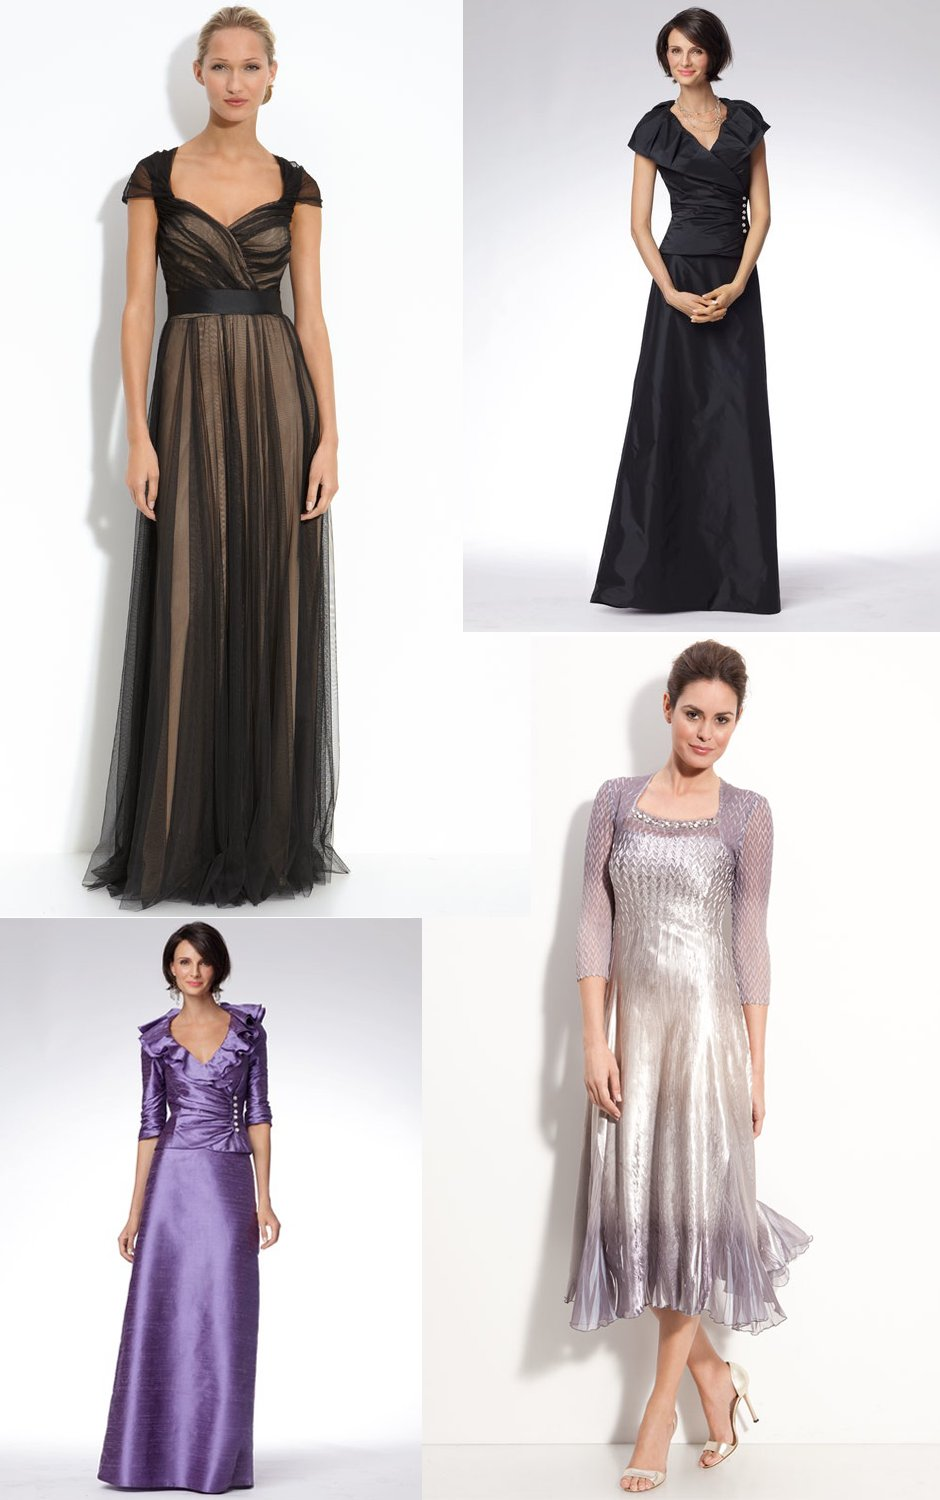 Mother-of-the-bride-dresses-wedding-fashion-for-mothers.full